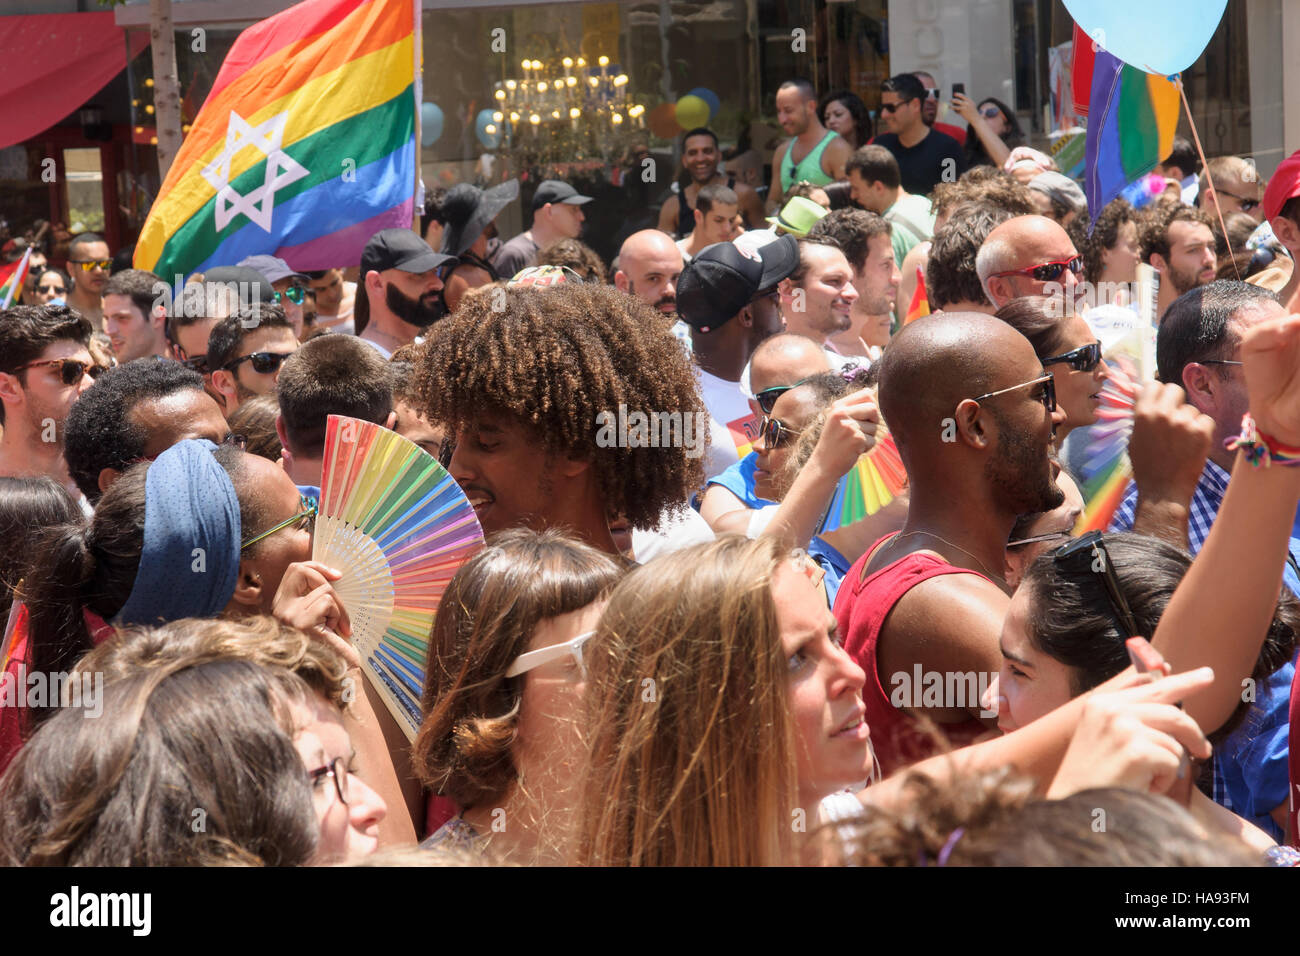 TEL-AVIV - JUNE 13, 2014: A crowd of people march in the Pride Parade in the streets of Tel-Aviv, Israel. The pride - Stock Image